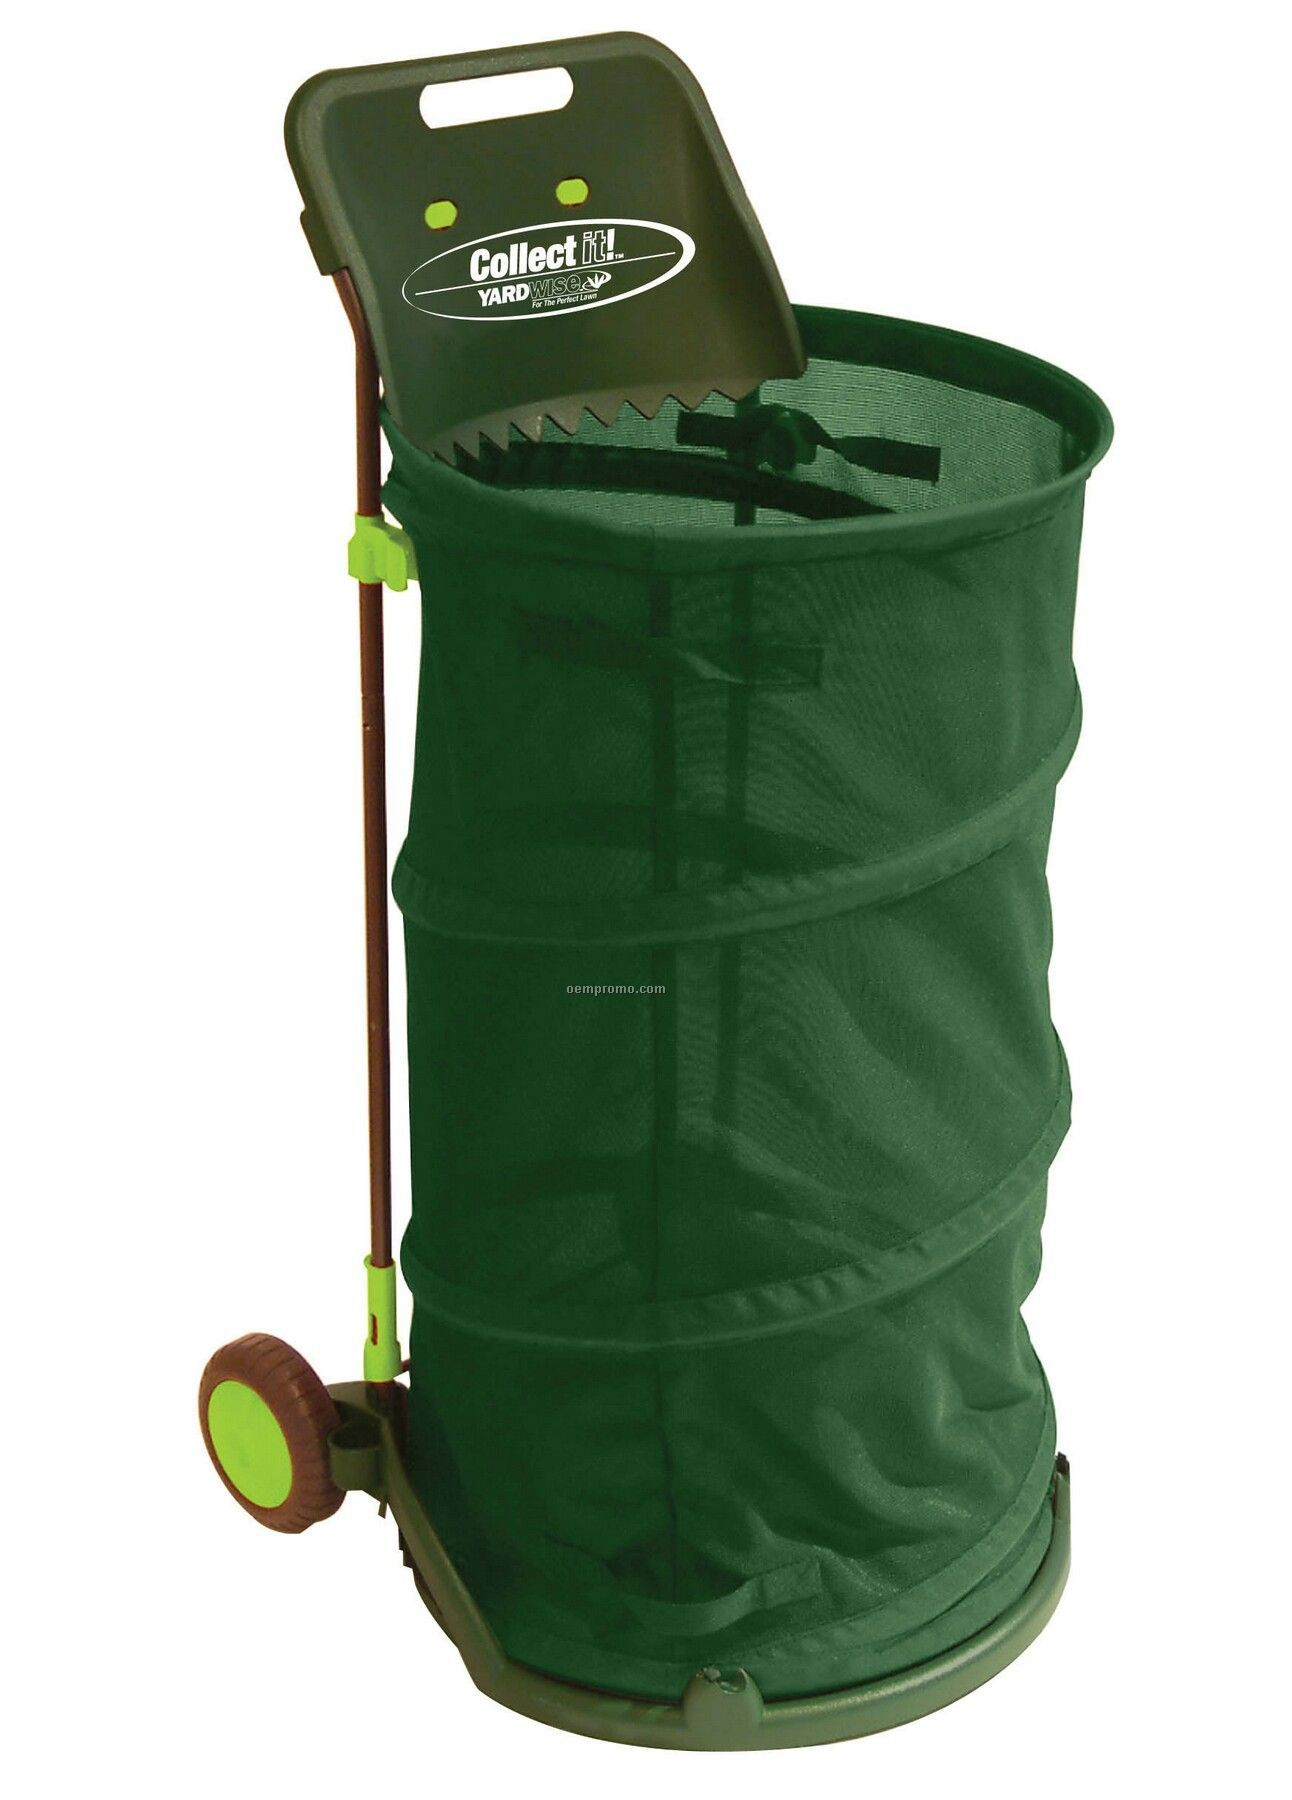 Yardwise Collect It! 32-gallon Pop-up Debris Collection System